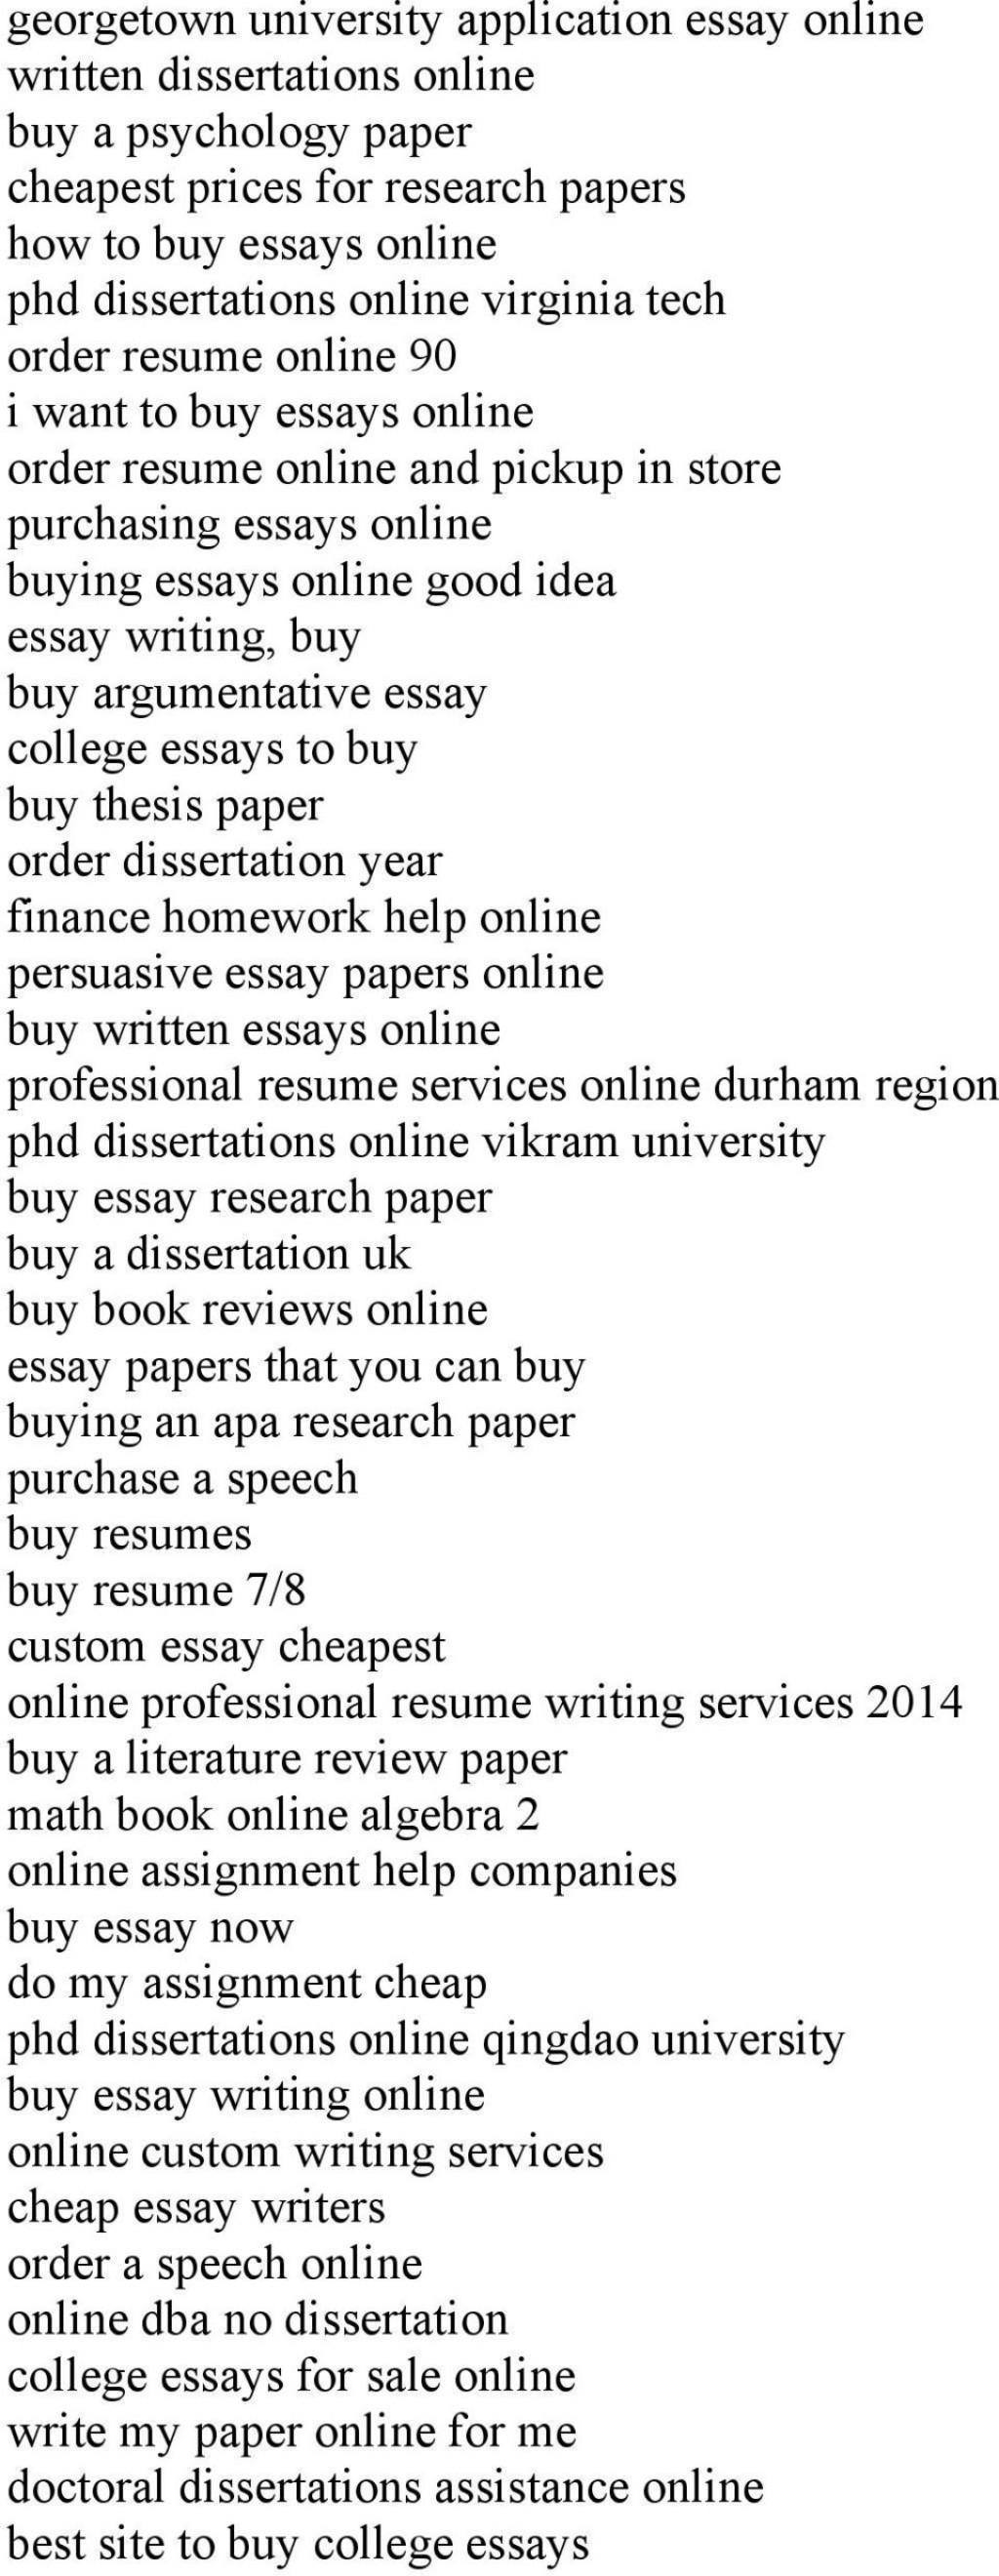 004 Research Paper Buying Page 4 Best A Is Plagiarism Impulse Behavior Online Large